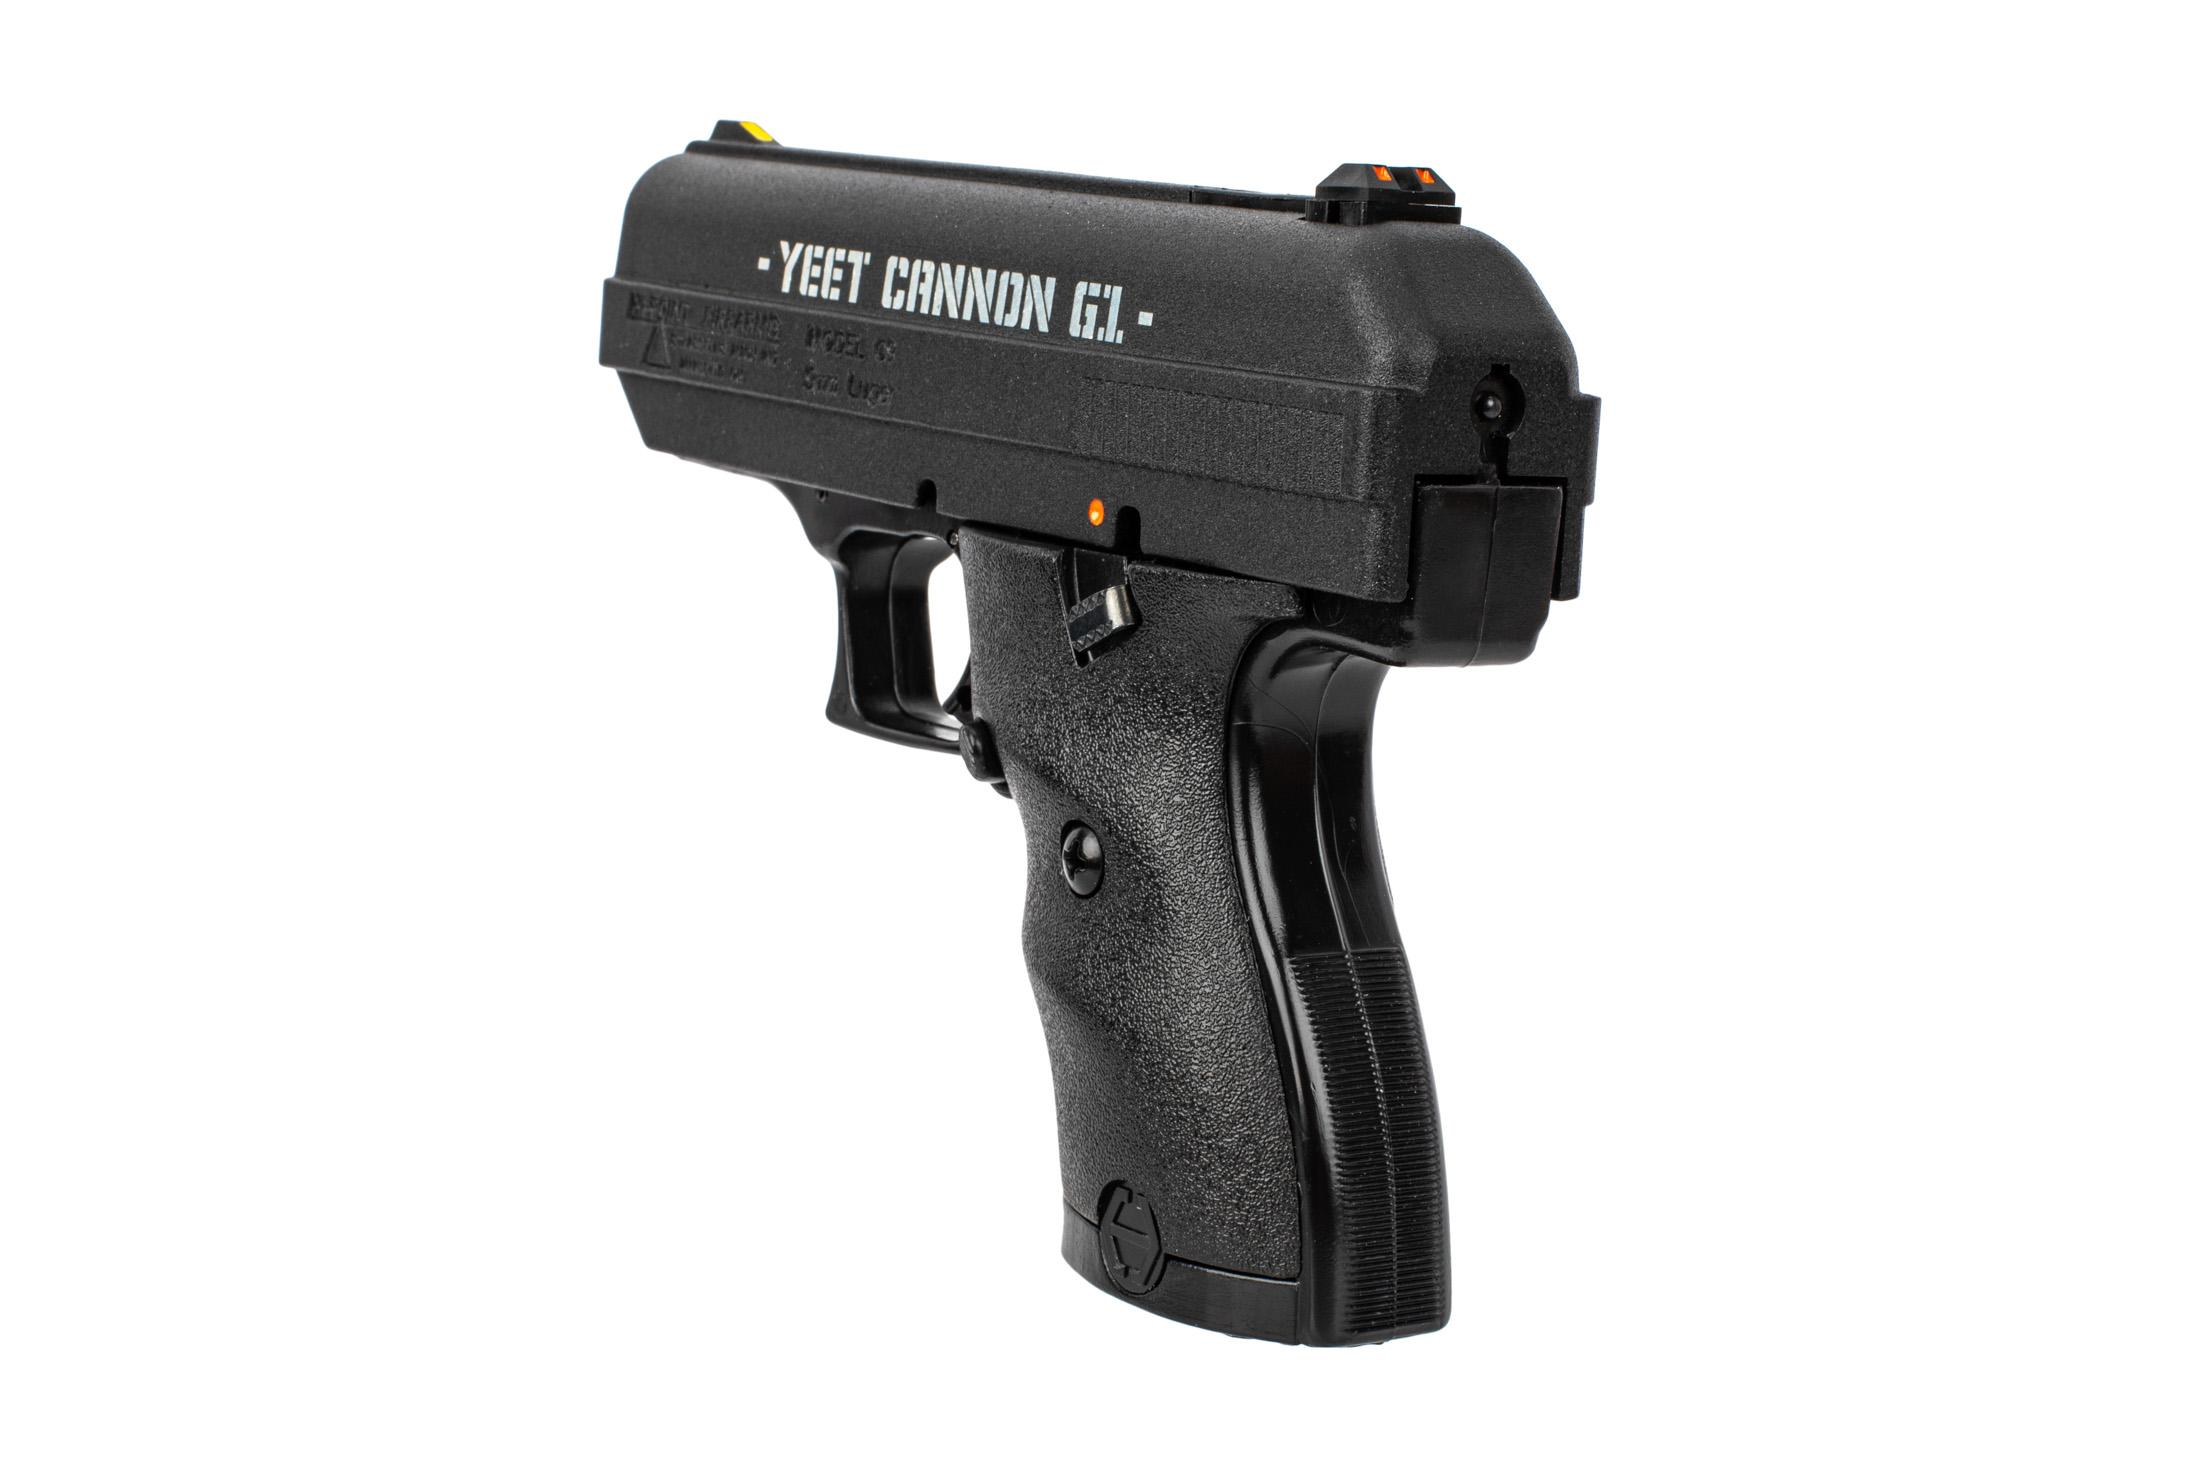 Hi-Point C9 9mm handgun is special edition YEET CANNON because memes and has 3-dot sights with adjustable rear.